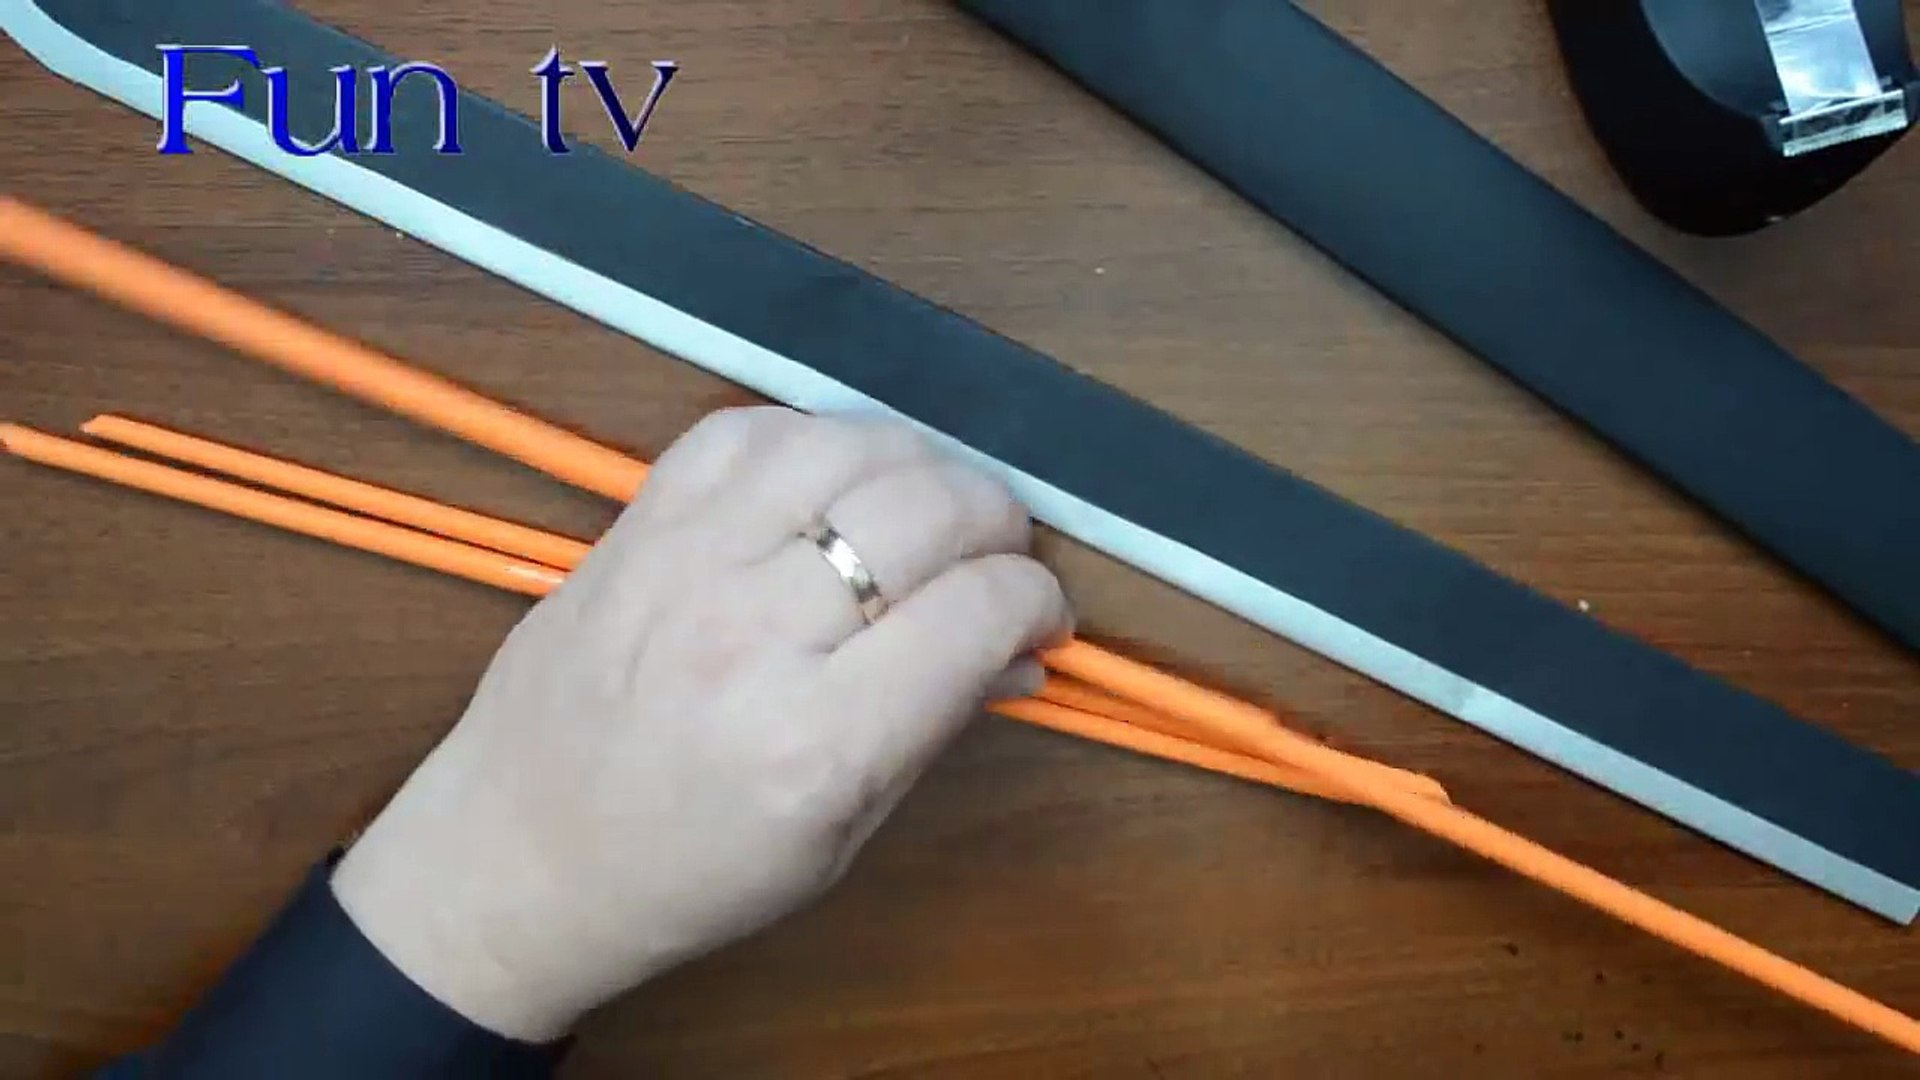 How to make a paper sword and blowgun combo - paper weapons - ninja weapons